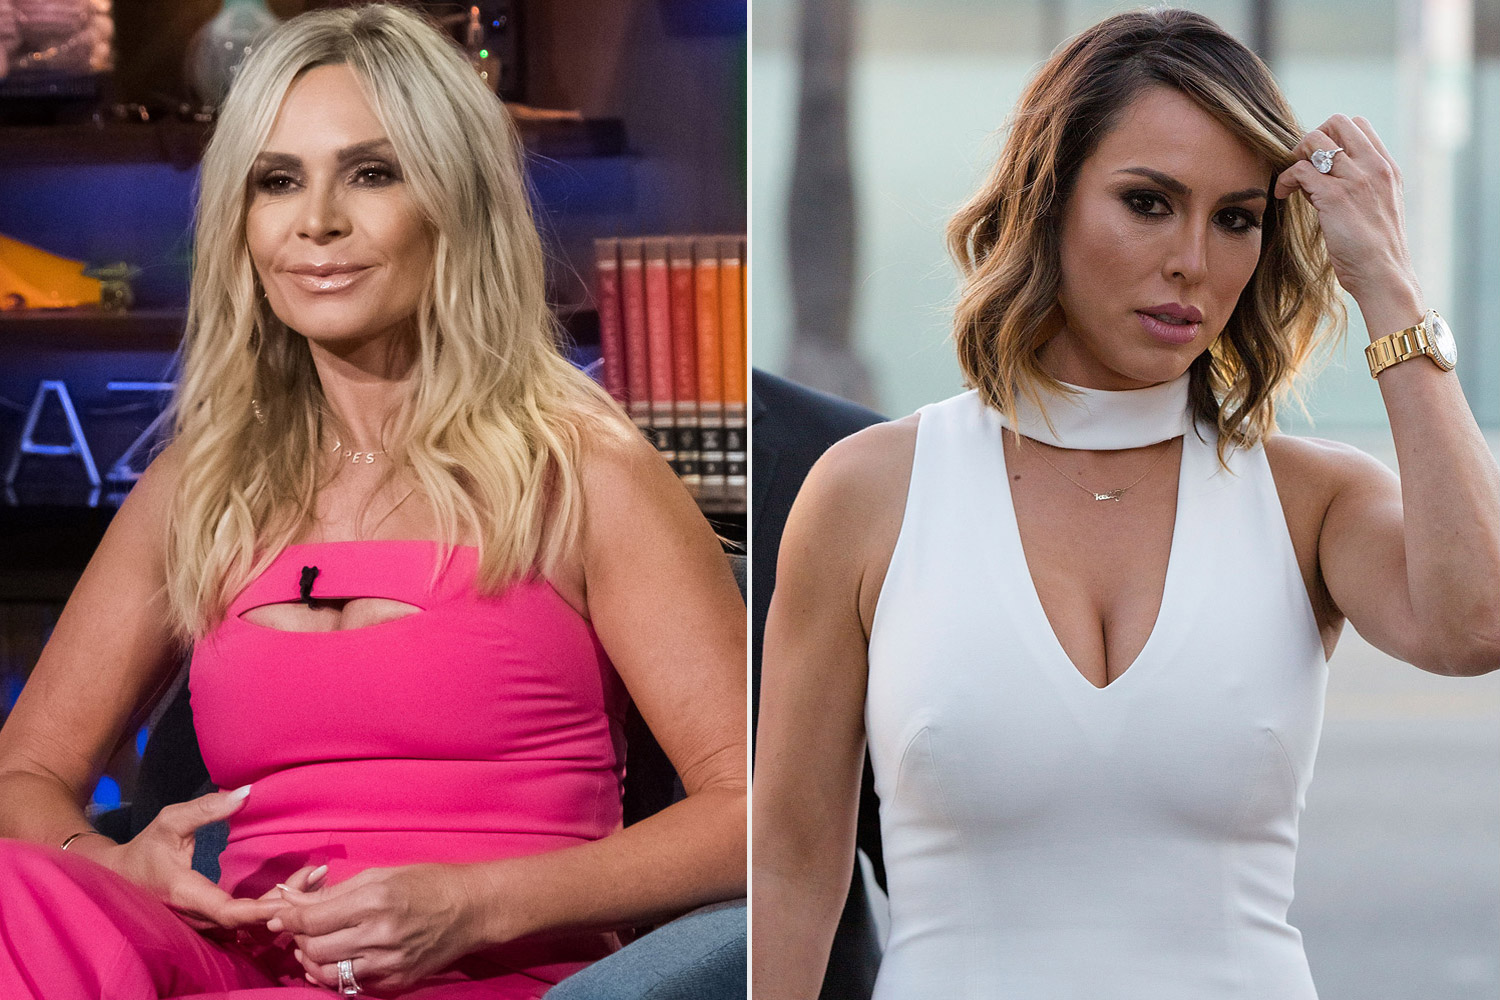 Rhoc S Tamra Judge Calls For Kelly Dodd To Be Fired For Past